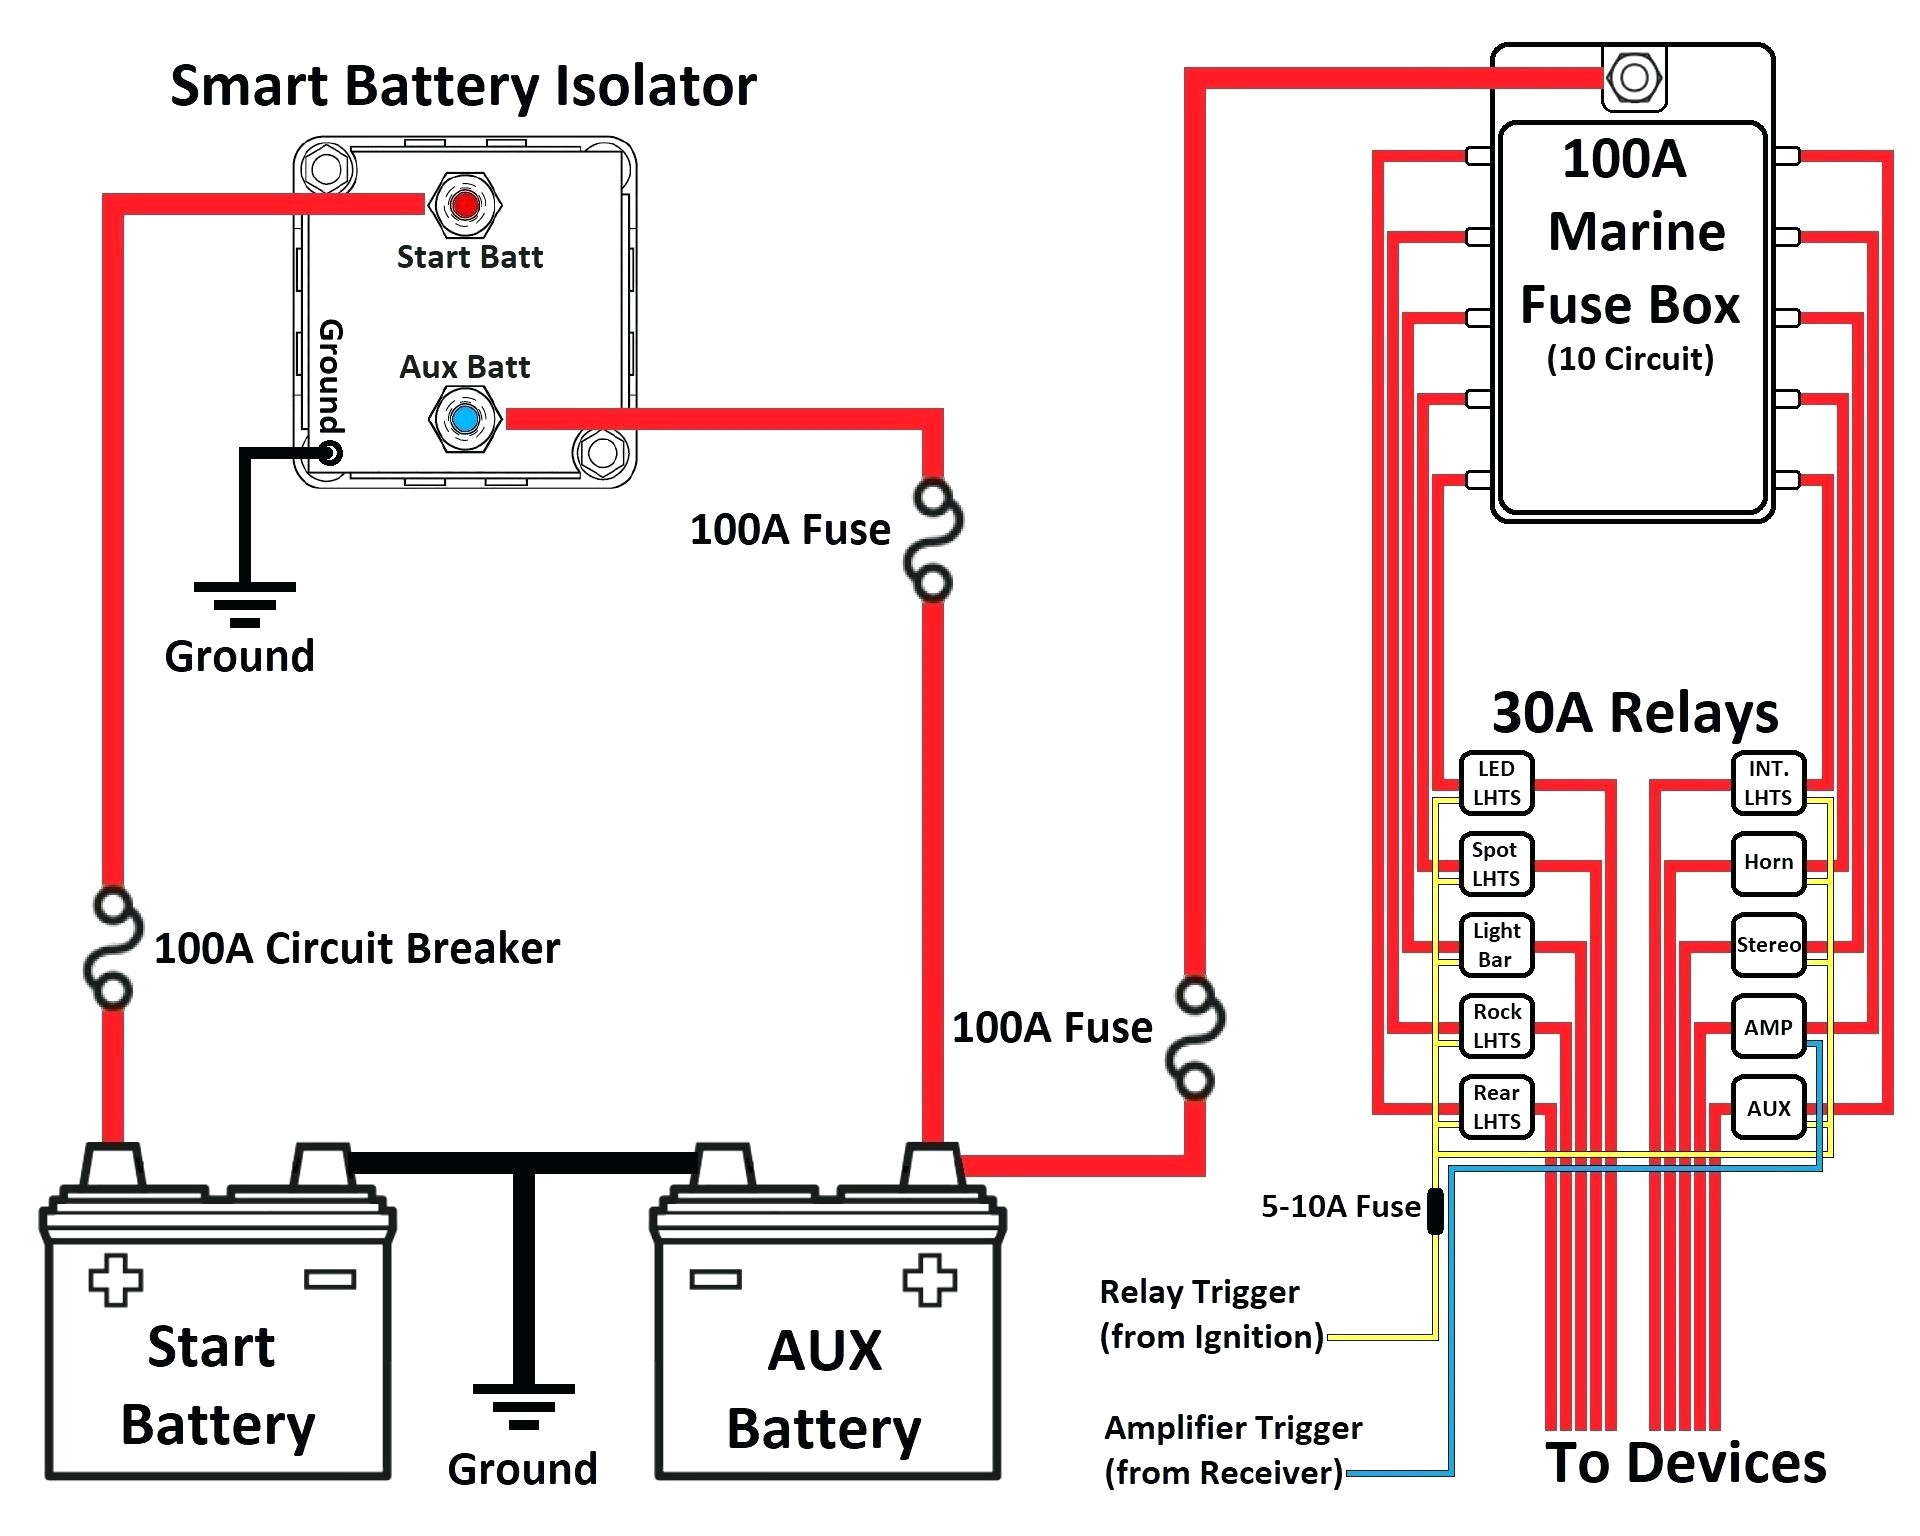 dual battery wiring diagram 72 blazer u2022 free wiring diagrams rh pcpersia org 12 Volt Battery Wiring Diagram Switch to Accessory 12 Volt Battery Wiring Diagram